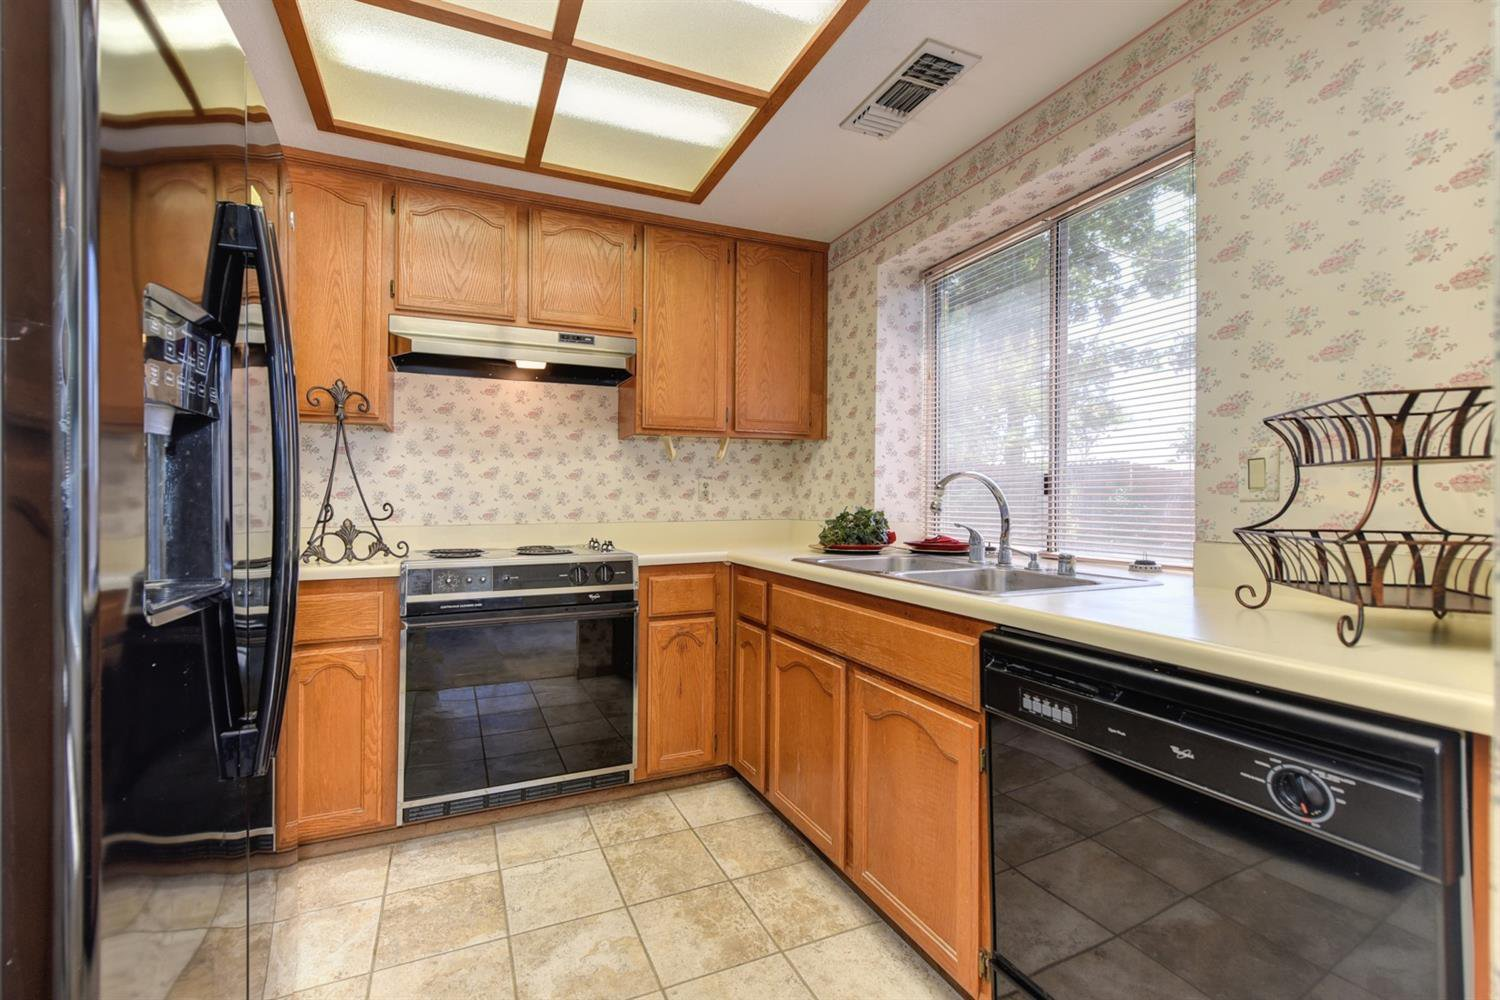 Citrus Heights California homes for sale.